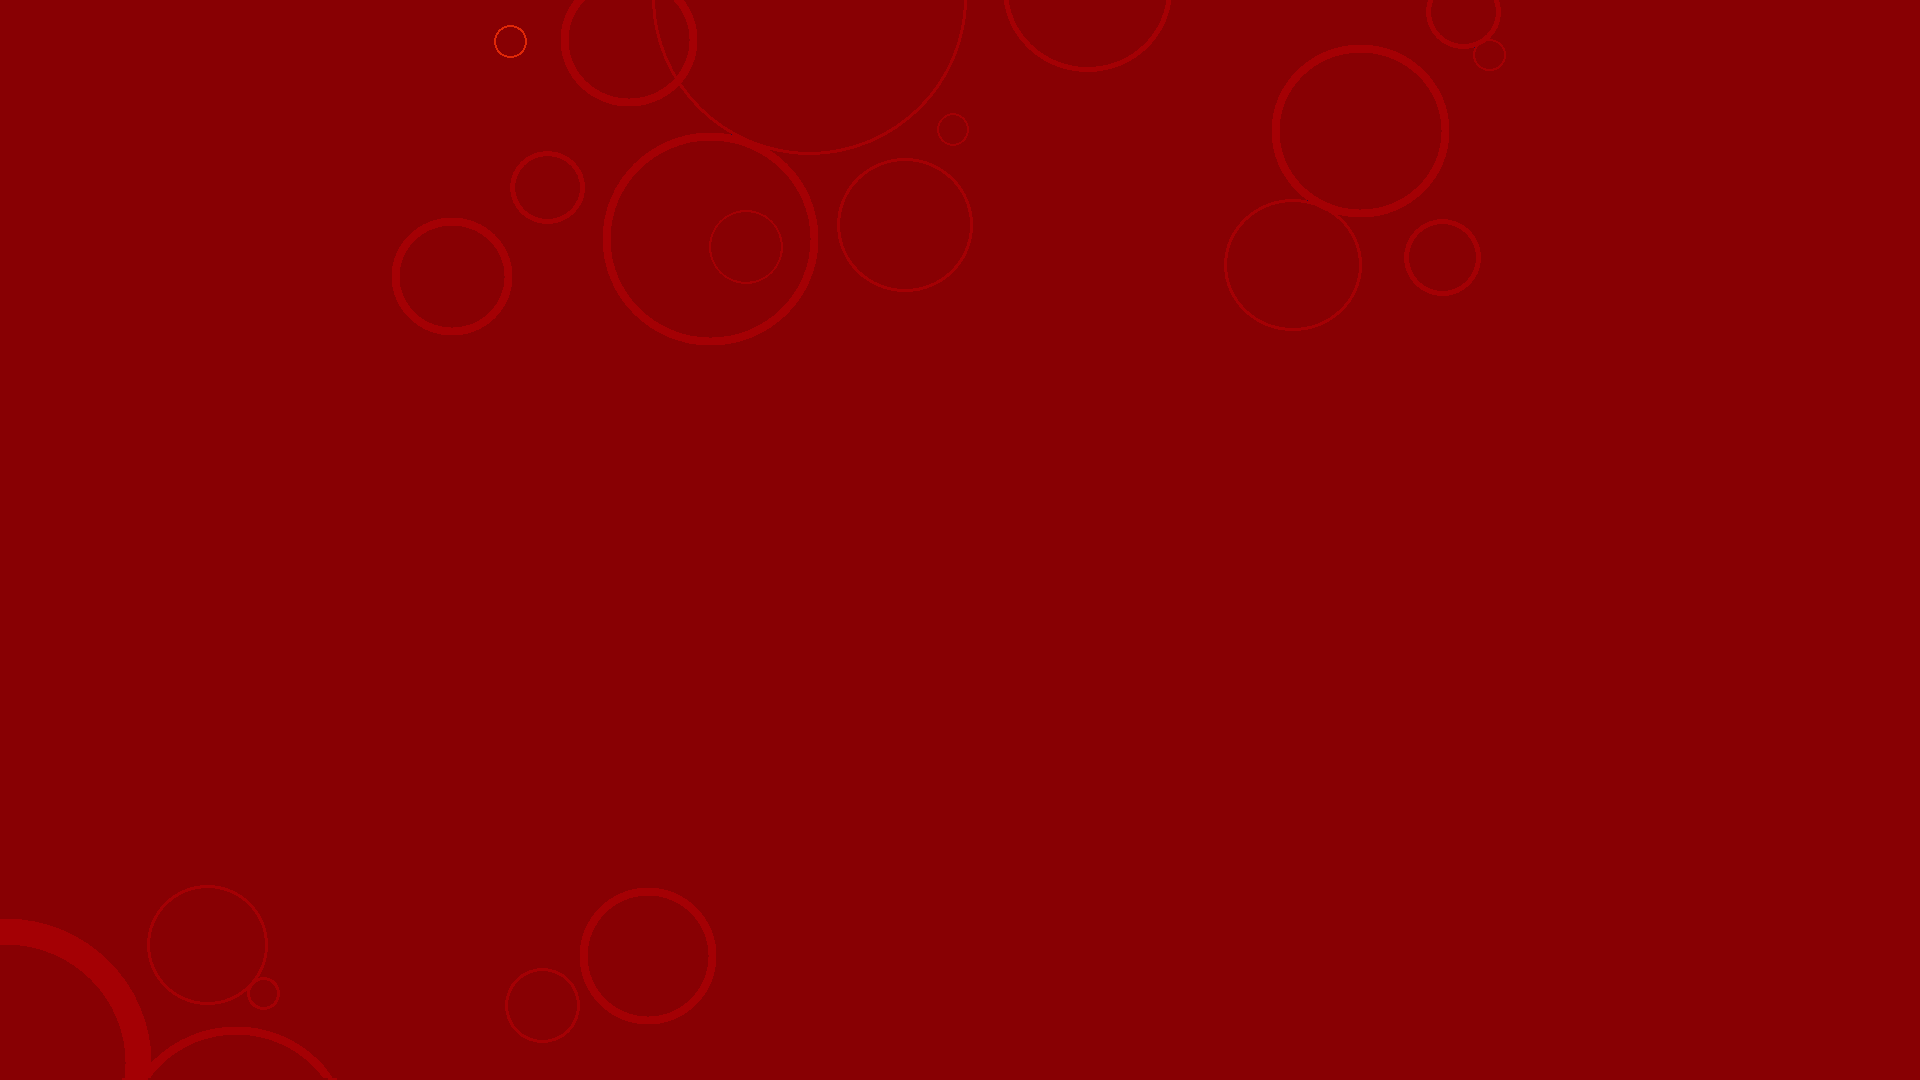 dark red backgrounds wallpaper cave